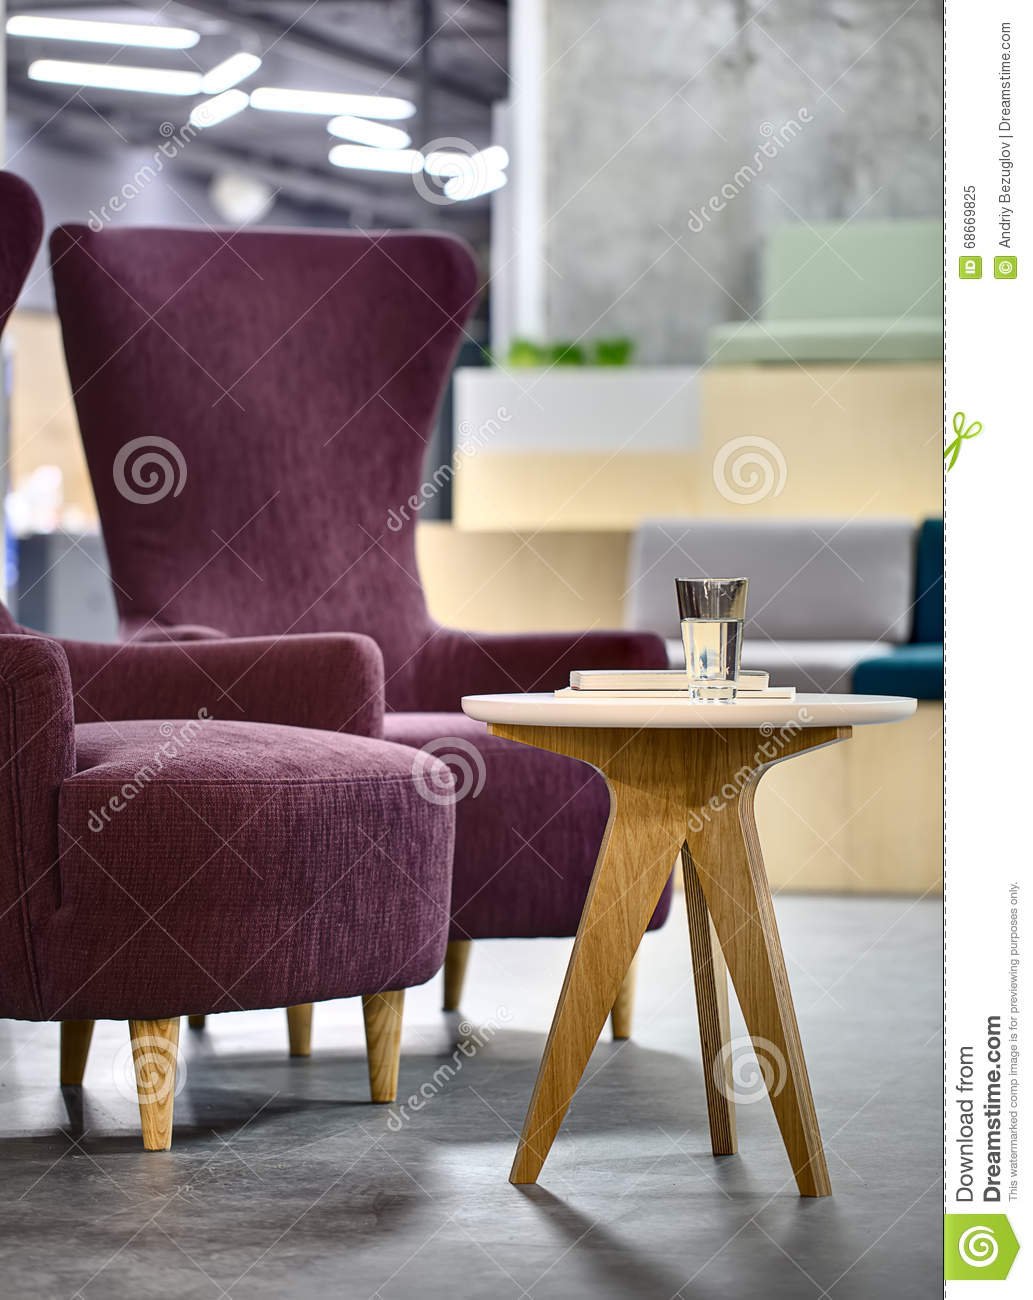 Armchairs with table